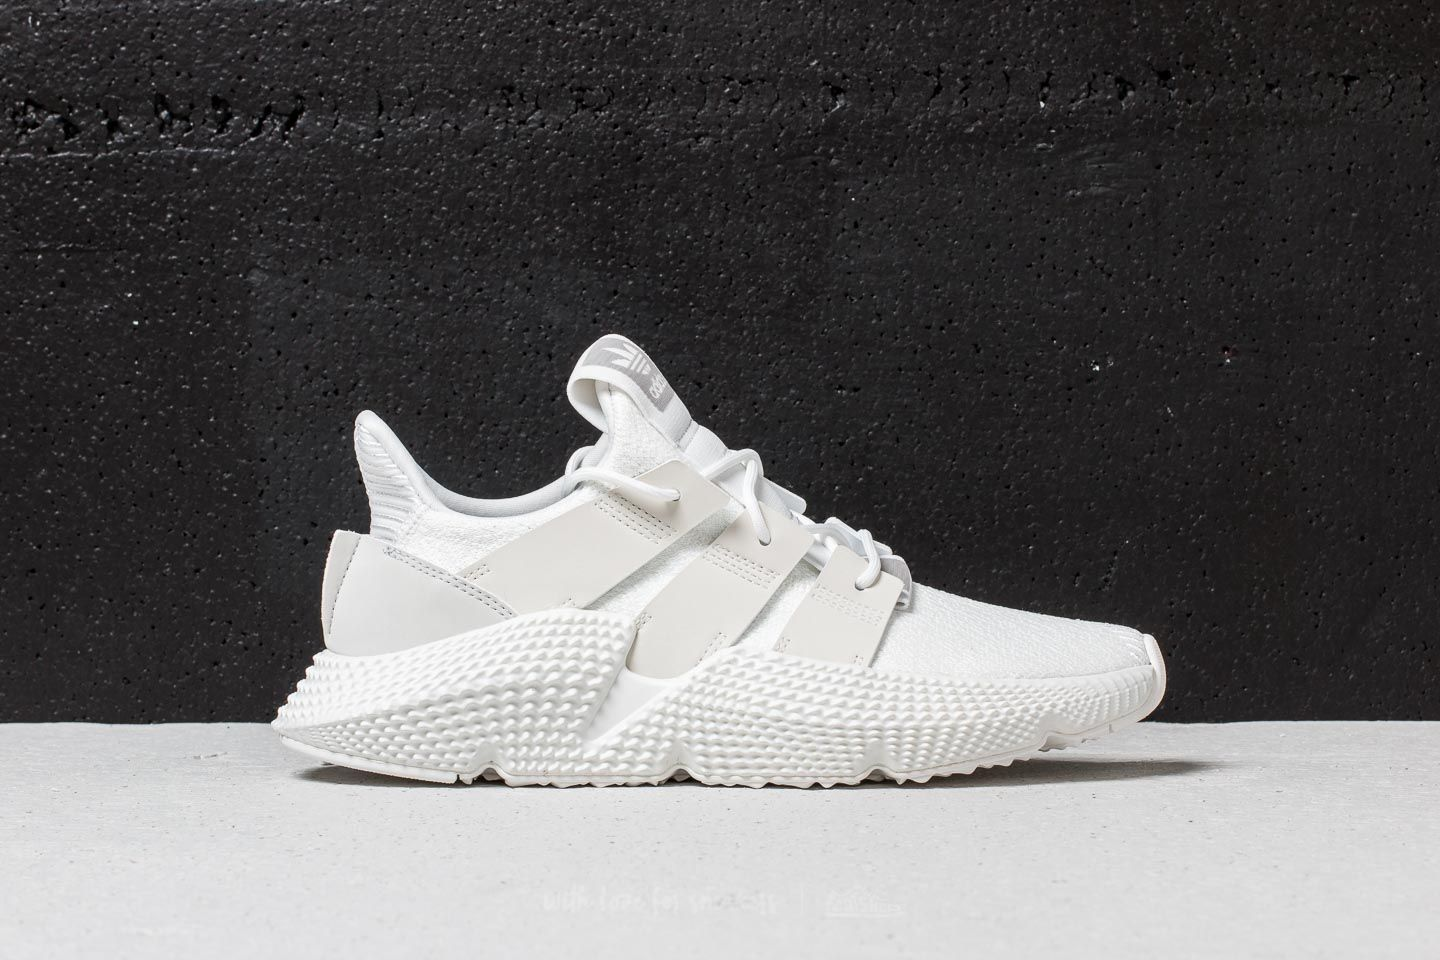 b1bee3aa2d9 adidas Prophere Ftw White  Ftw White  Crystal White in 2019 ...